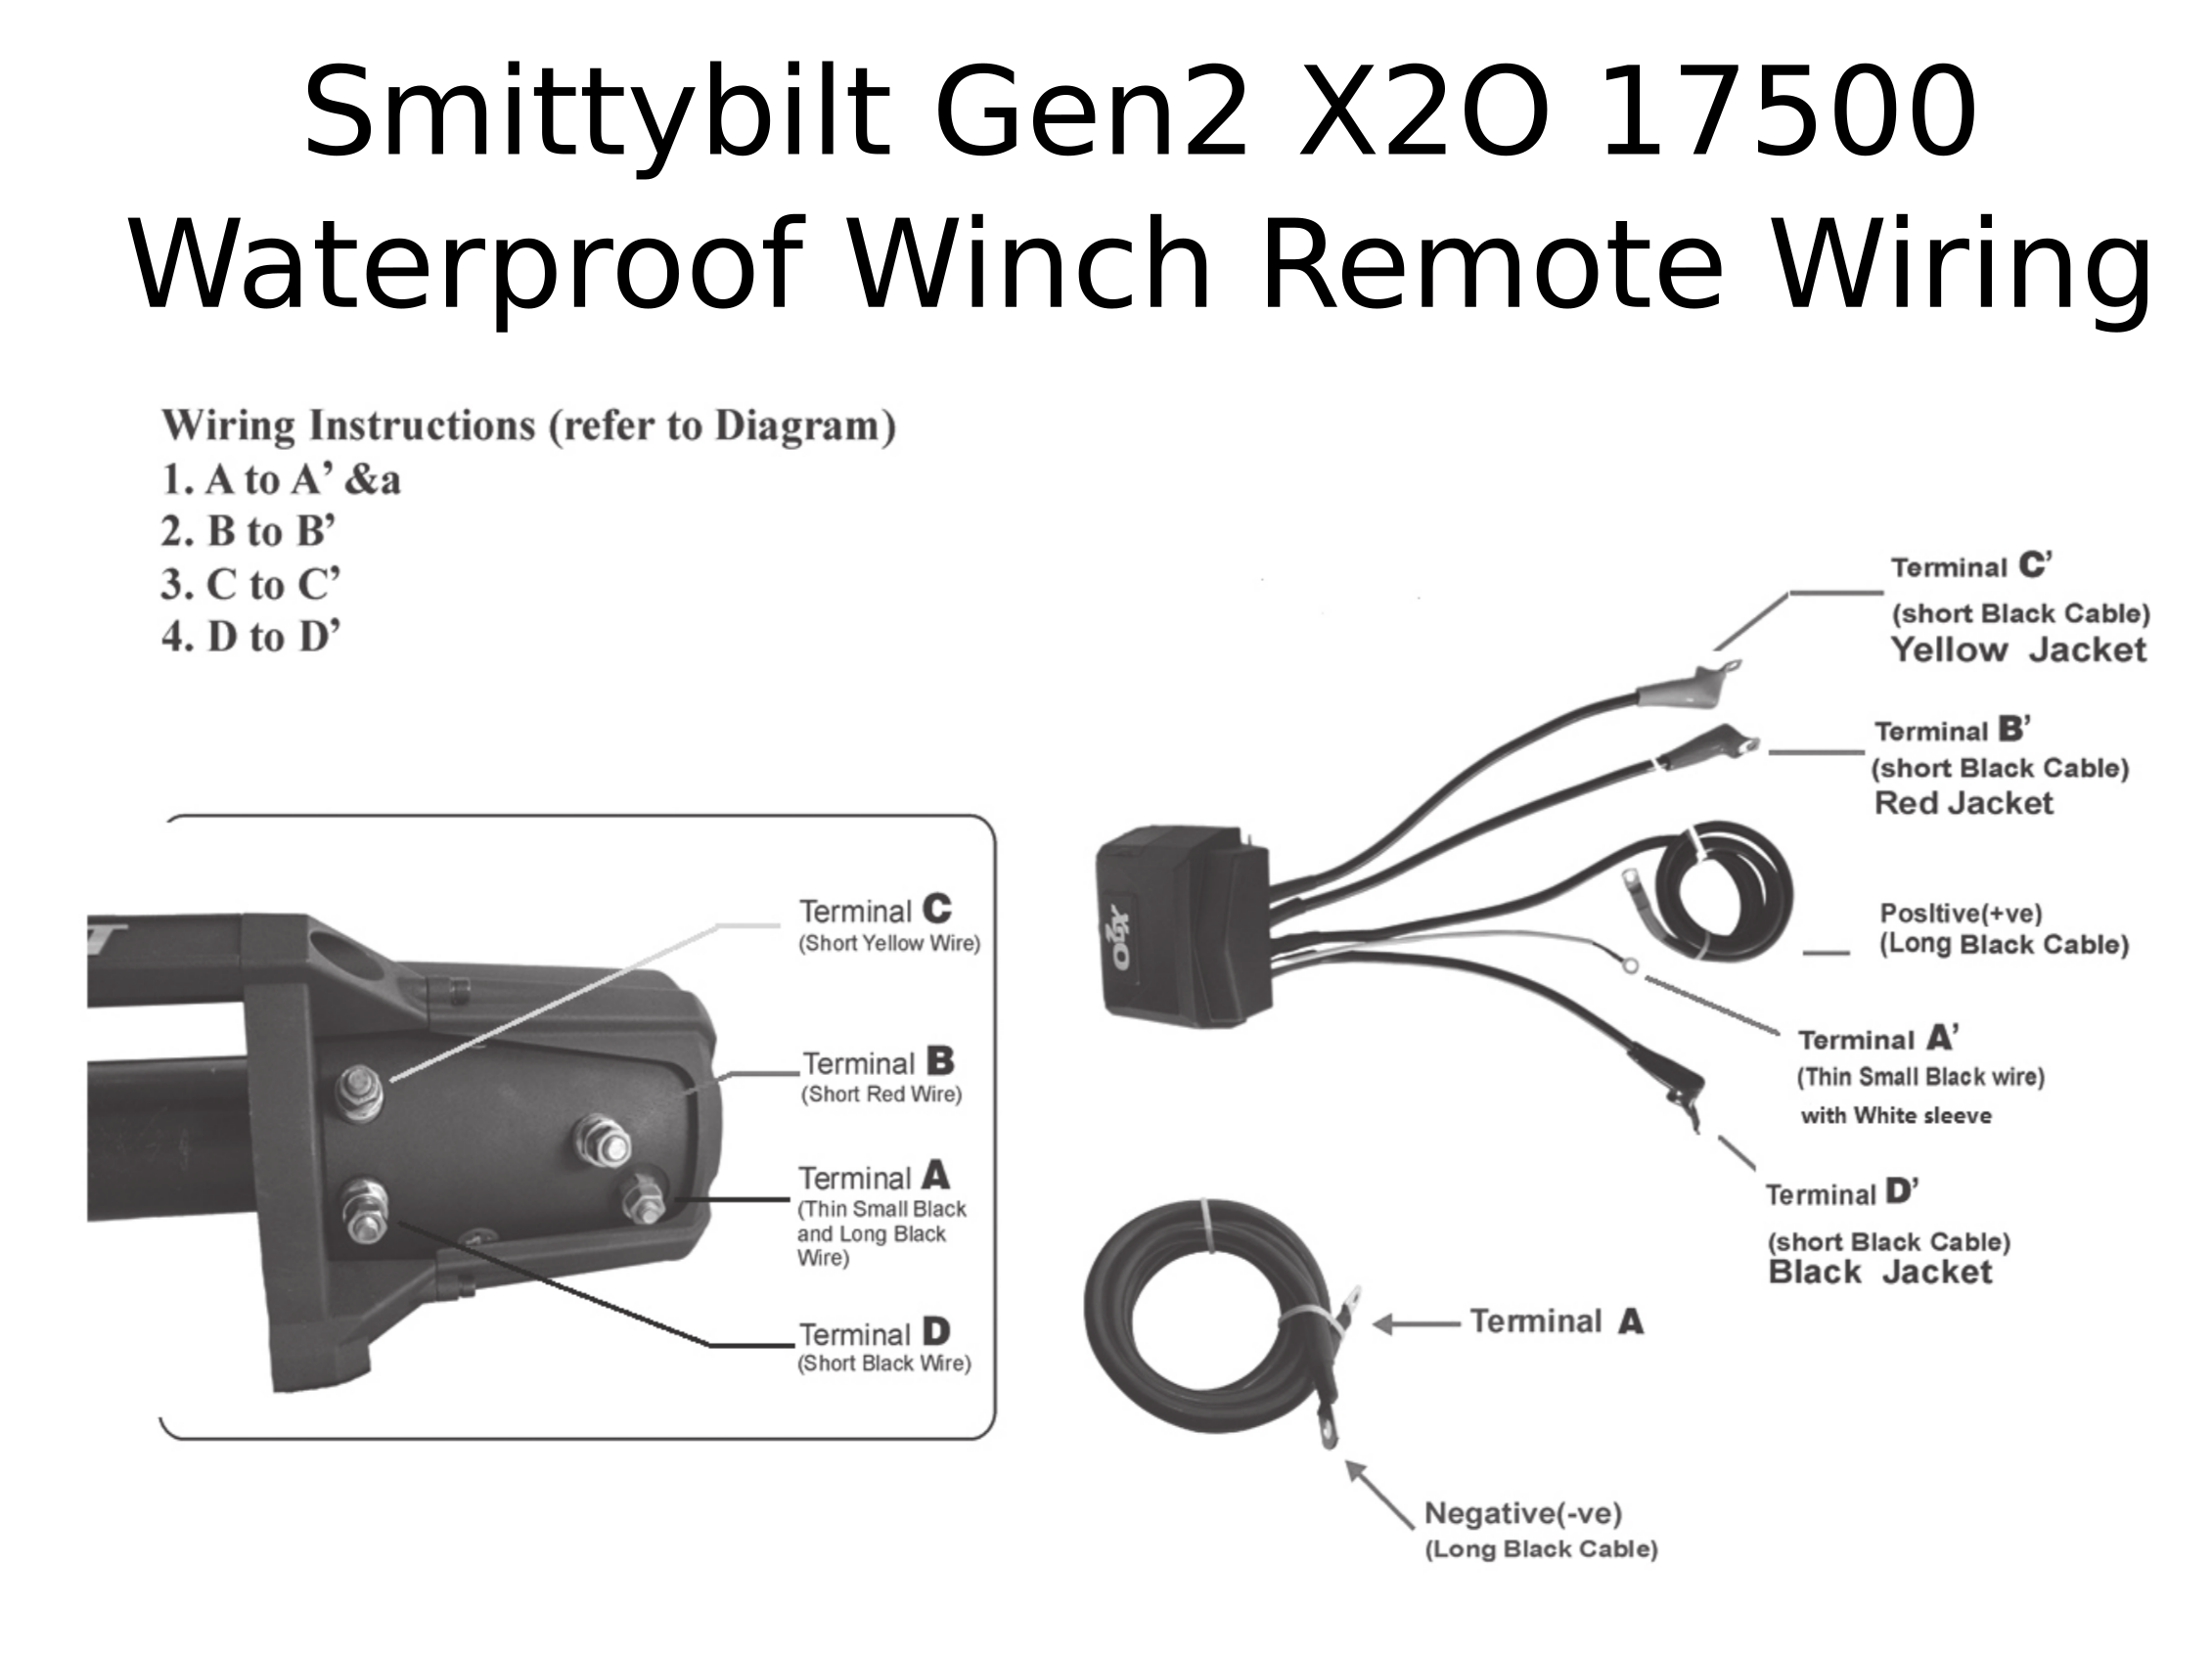 Smittybilt Gen2 X2o Waterproof Winch